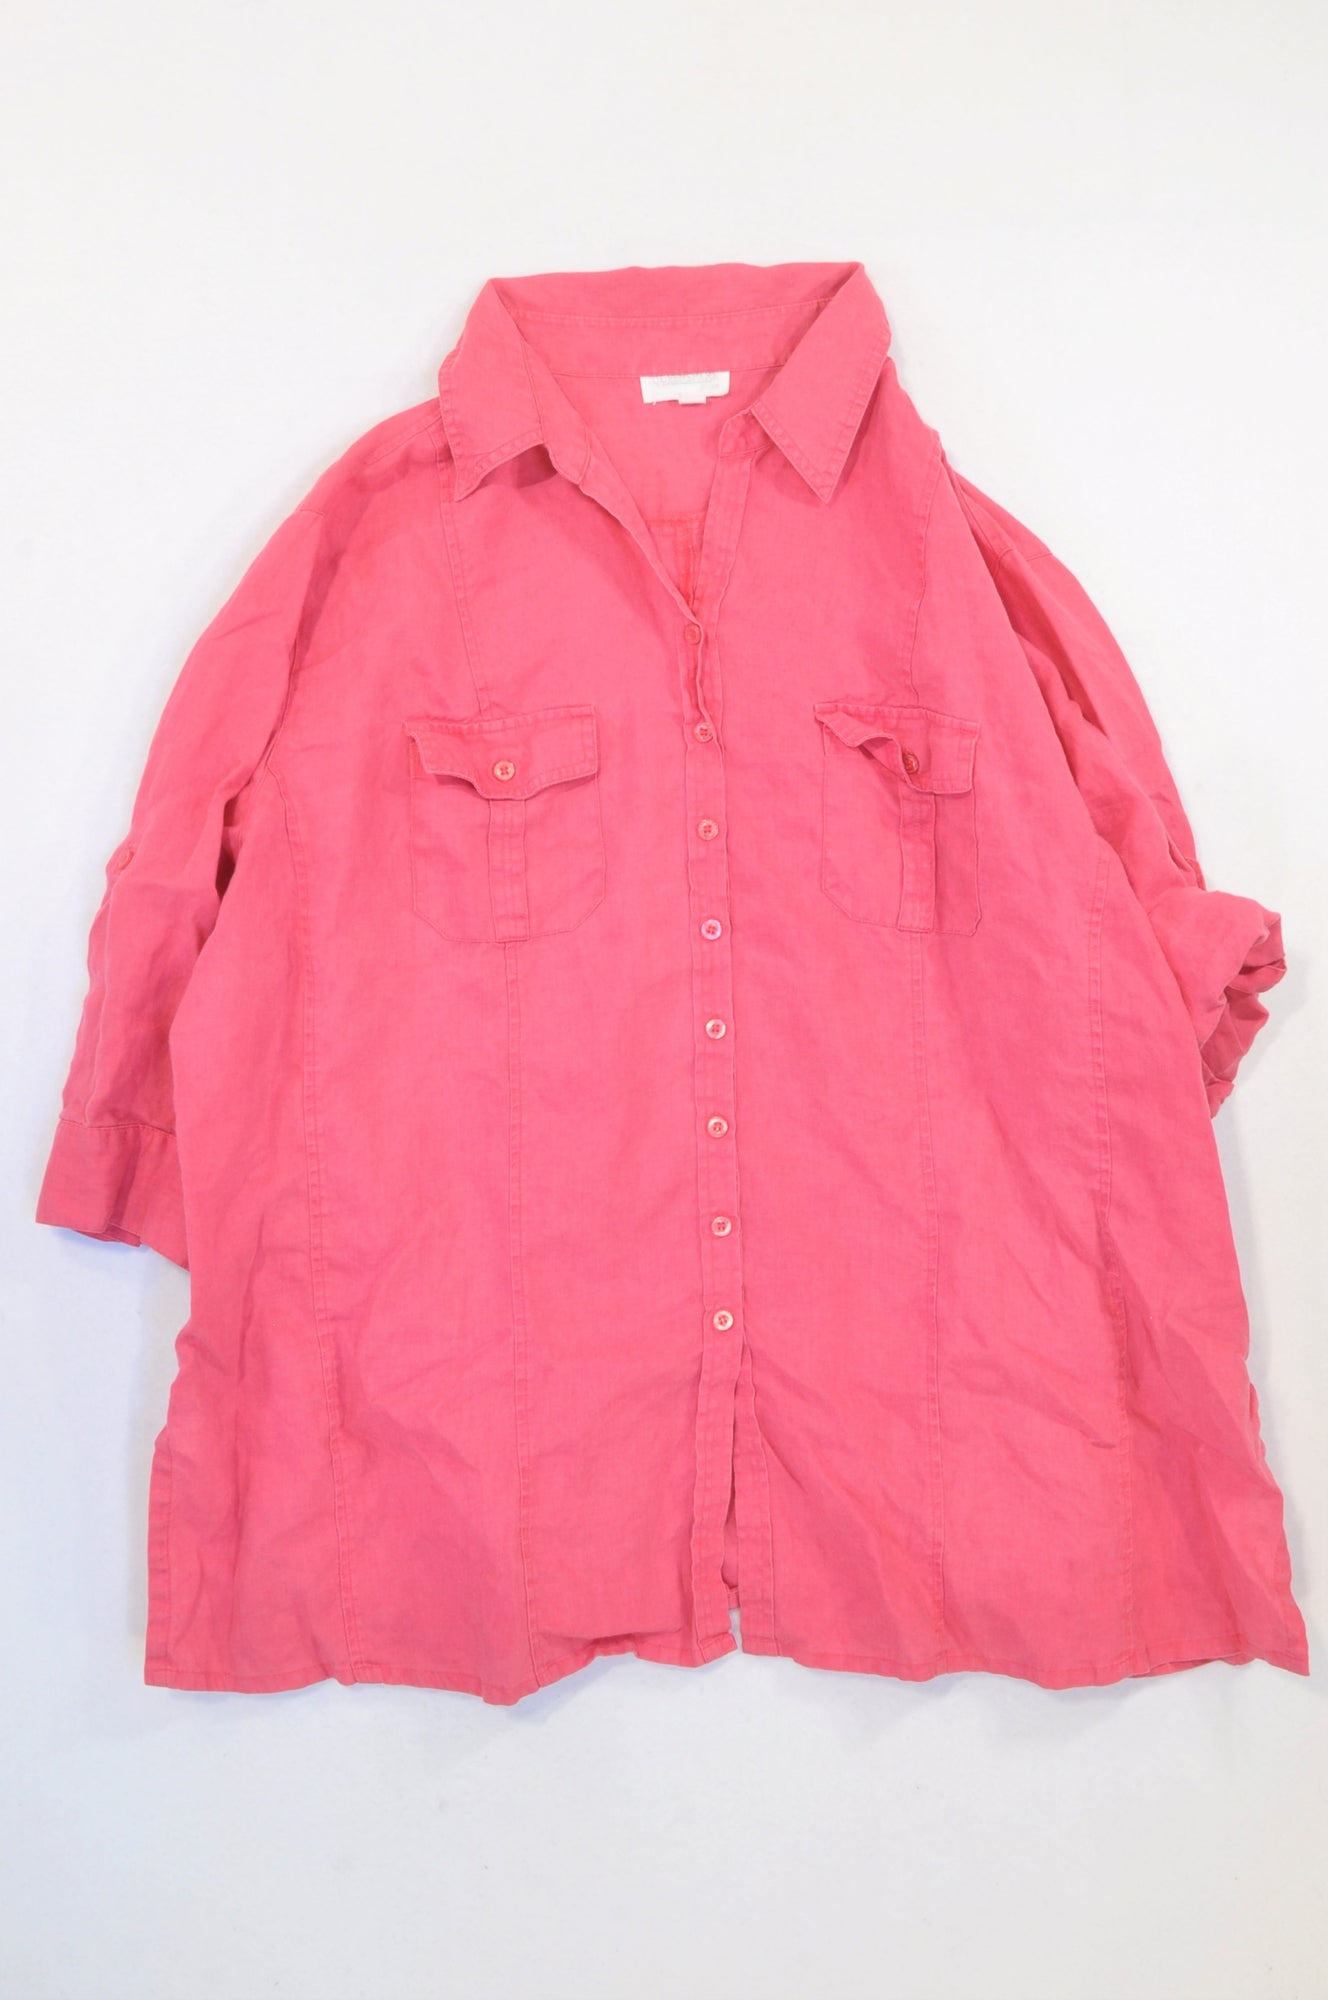 Queenspark Hot Pink Linen Button T-shirt Women Size 24